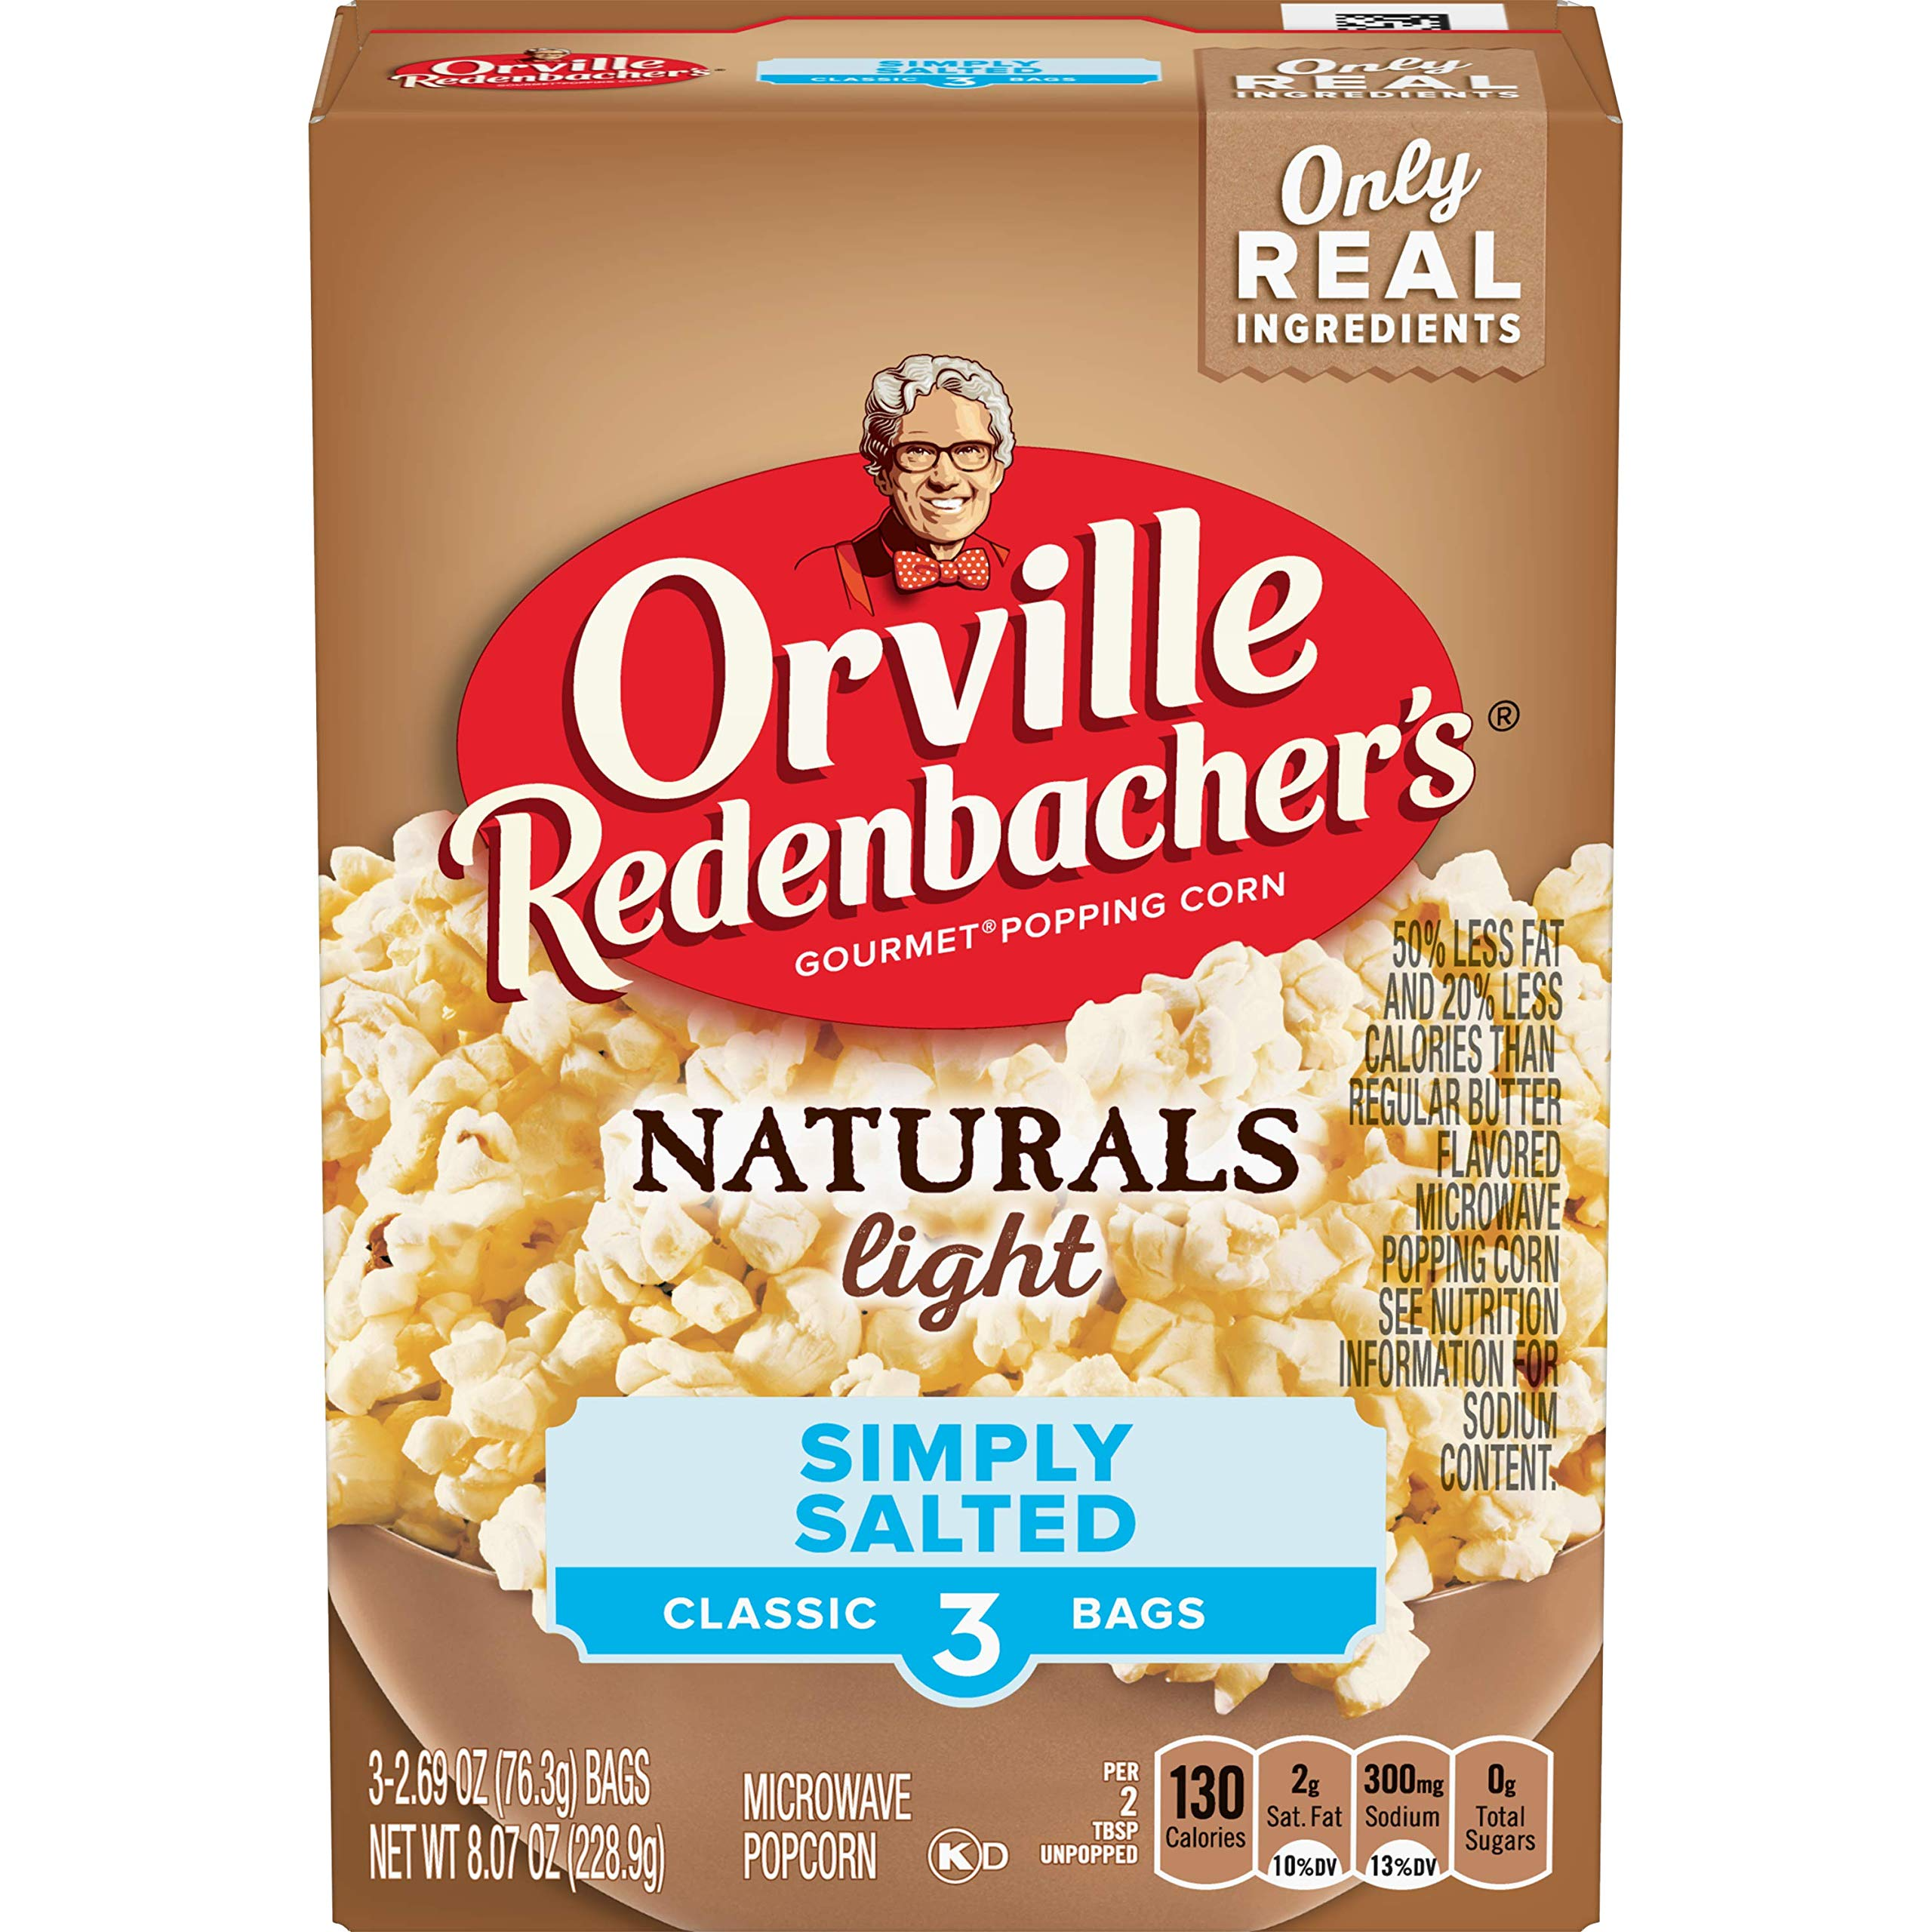 Orville Redenbacher's Naturals Light Simply Salted Popcorn, Classic Bag, 3-Count by Orville Redenbacher's